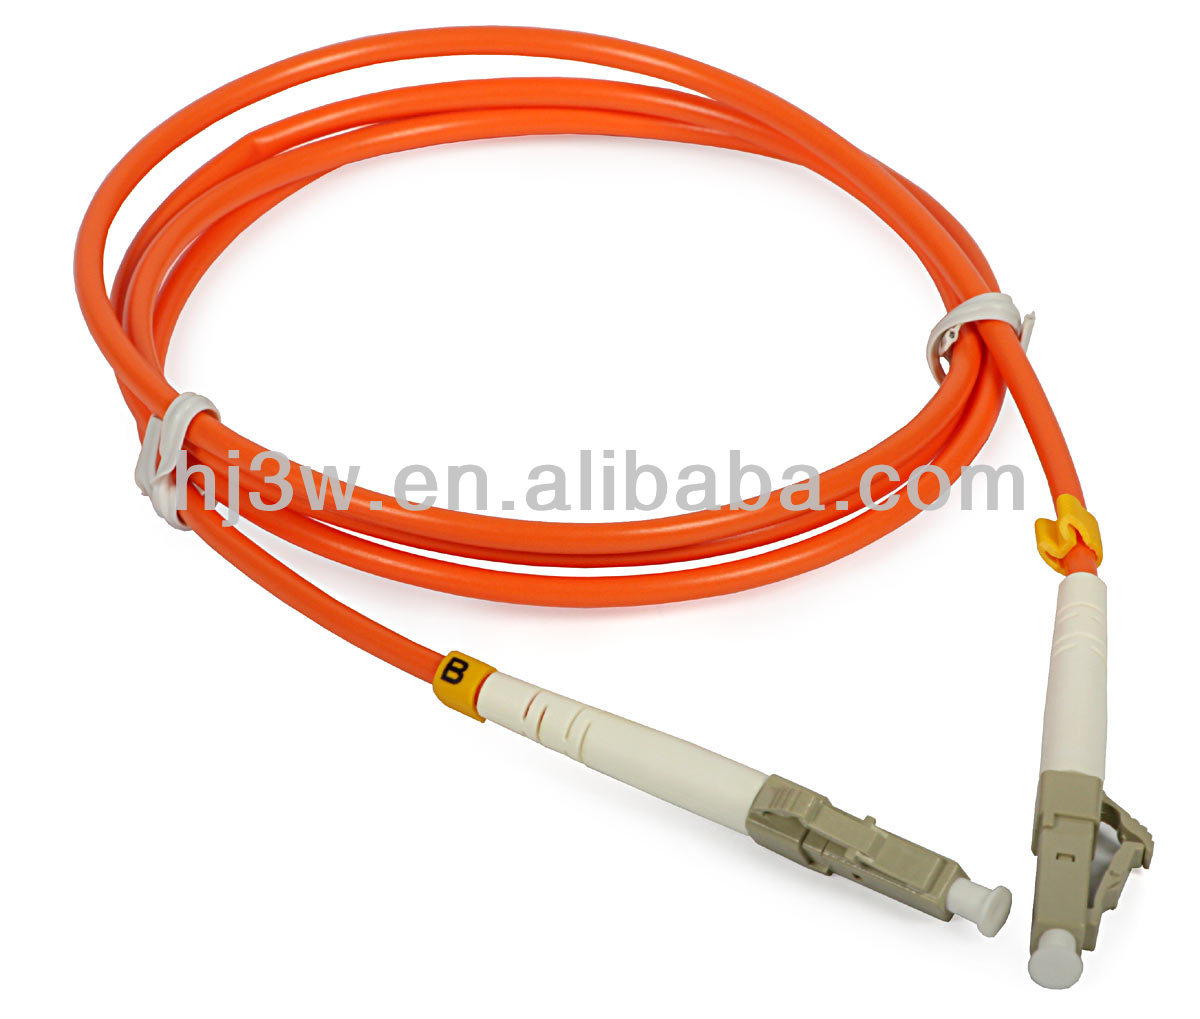 LC/UPC to LC/UPC 62.5/125 OM1 fibre optical Patch Cord